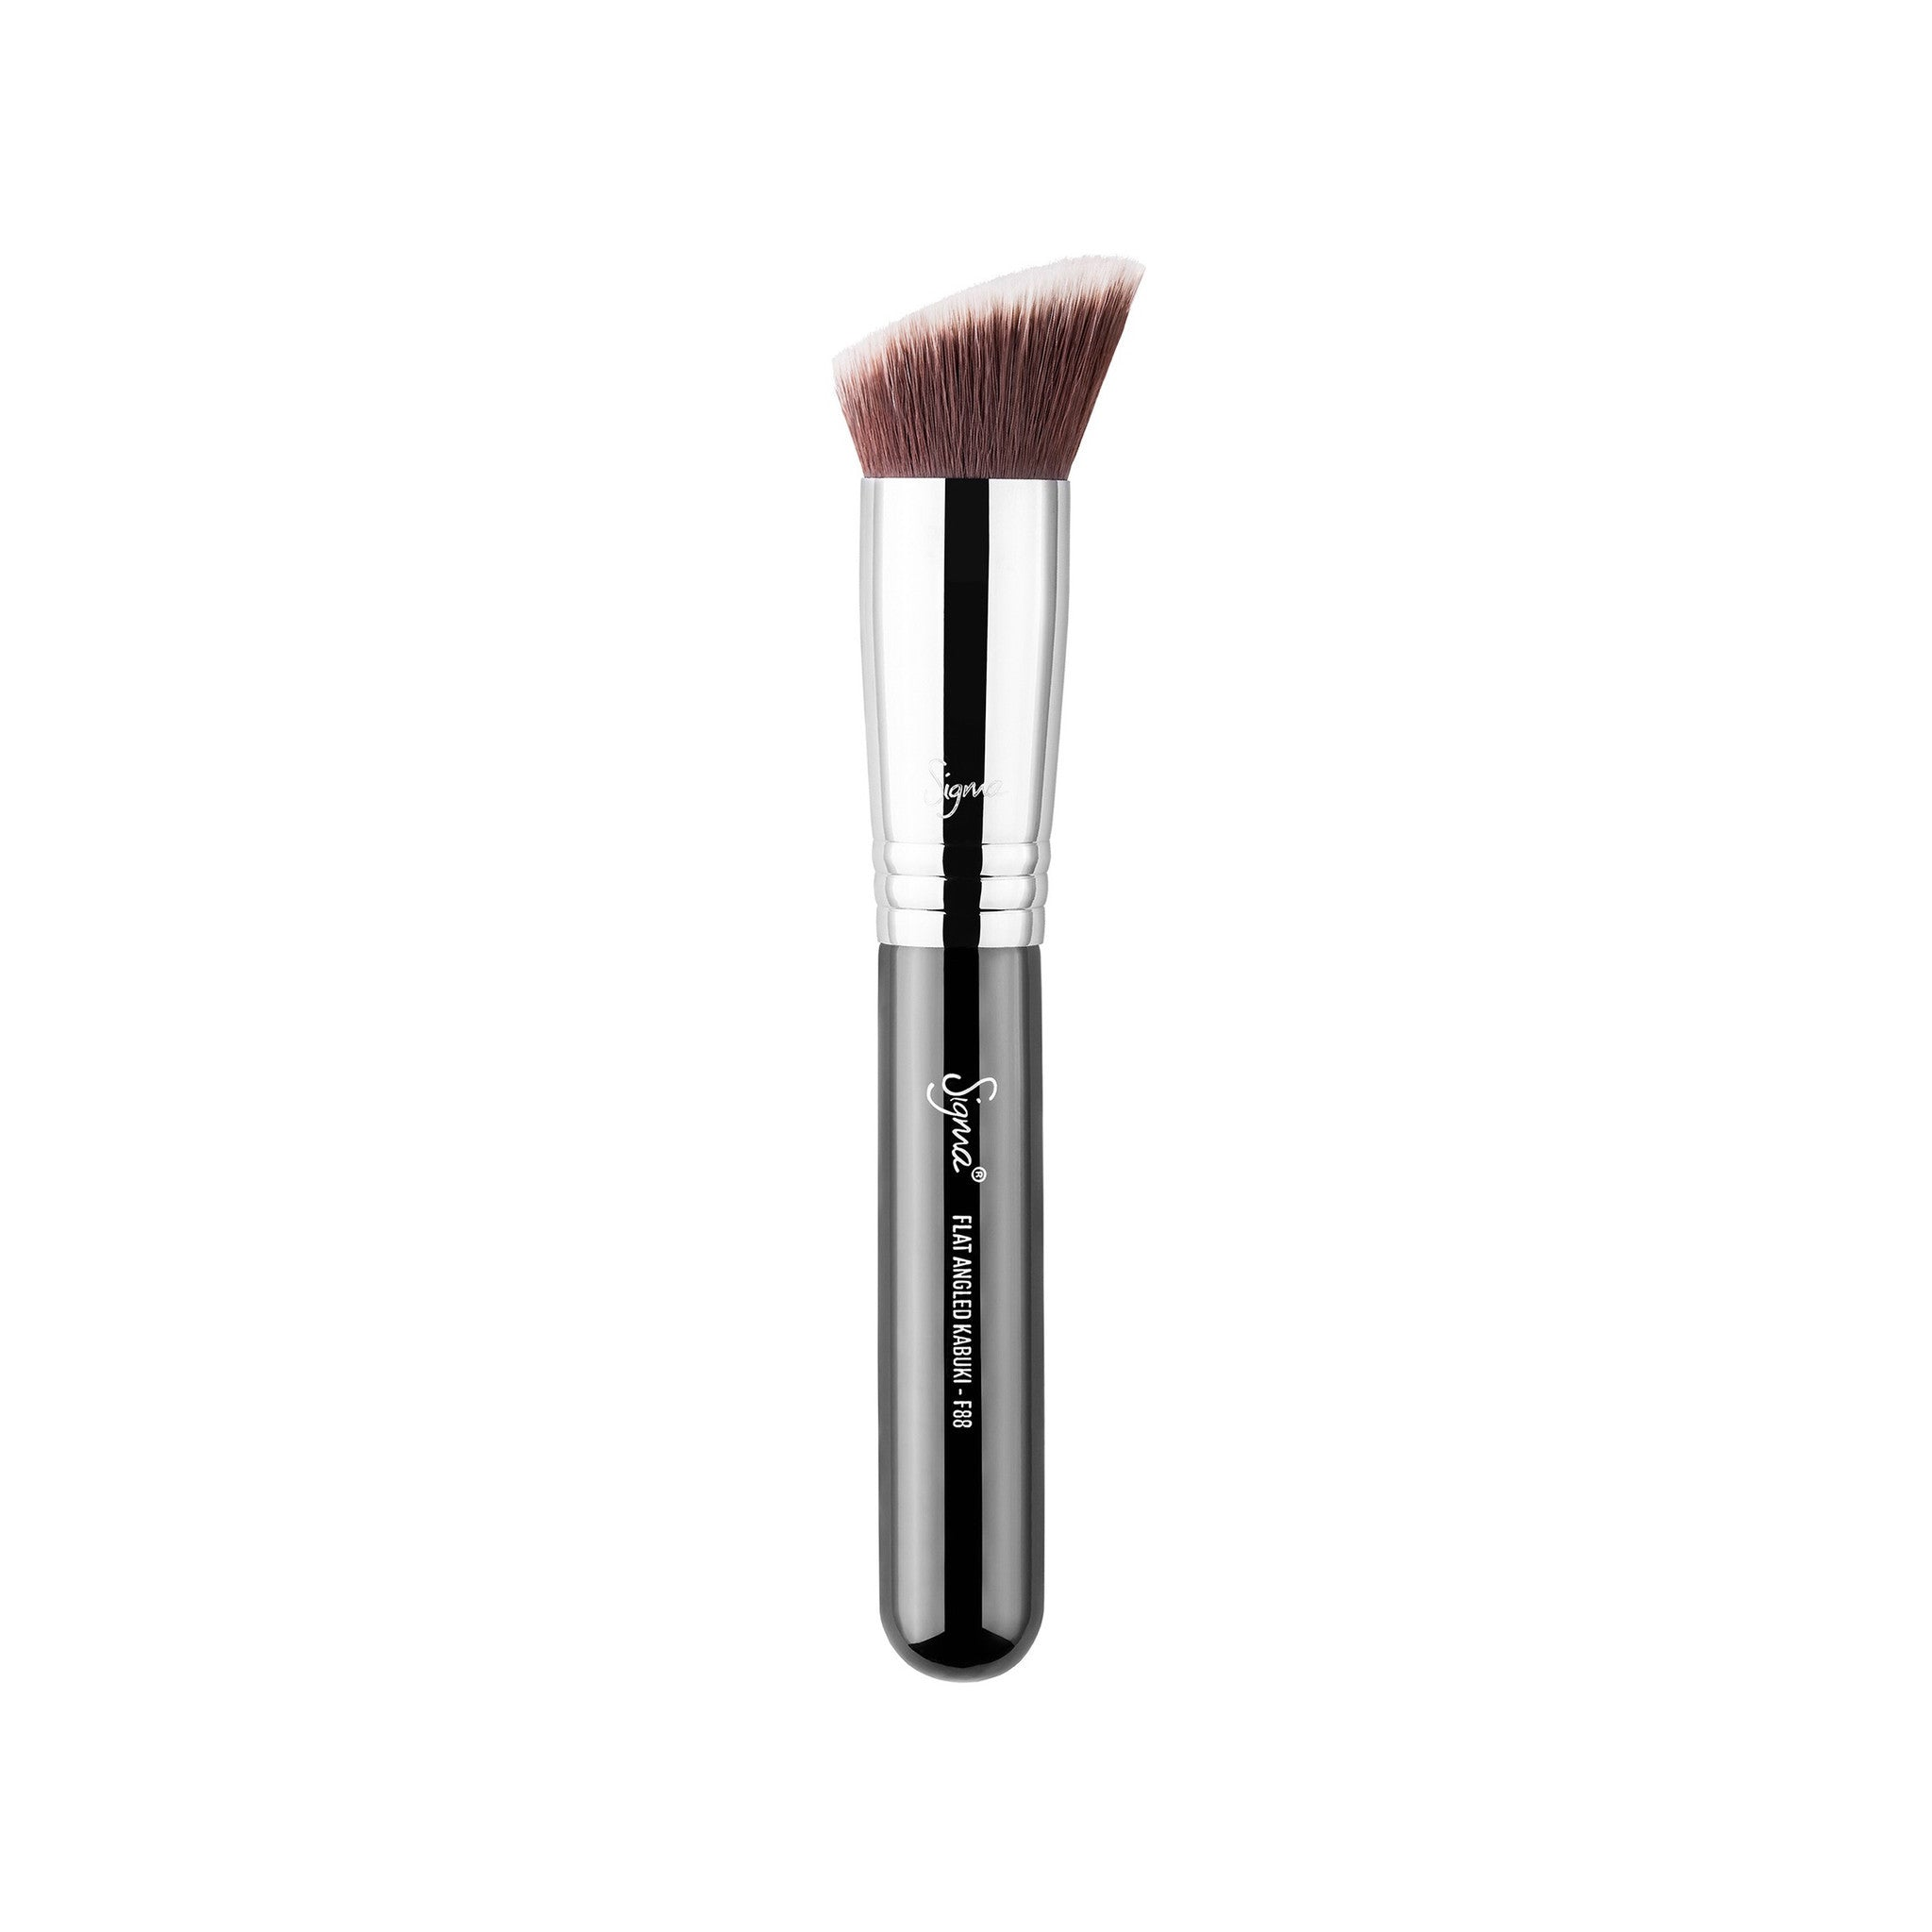 Tools & Brushes - F88 - Flat Angled Kabuki™ Brush